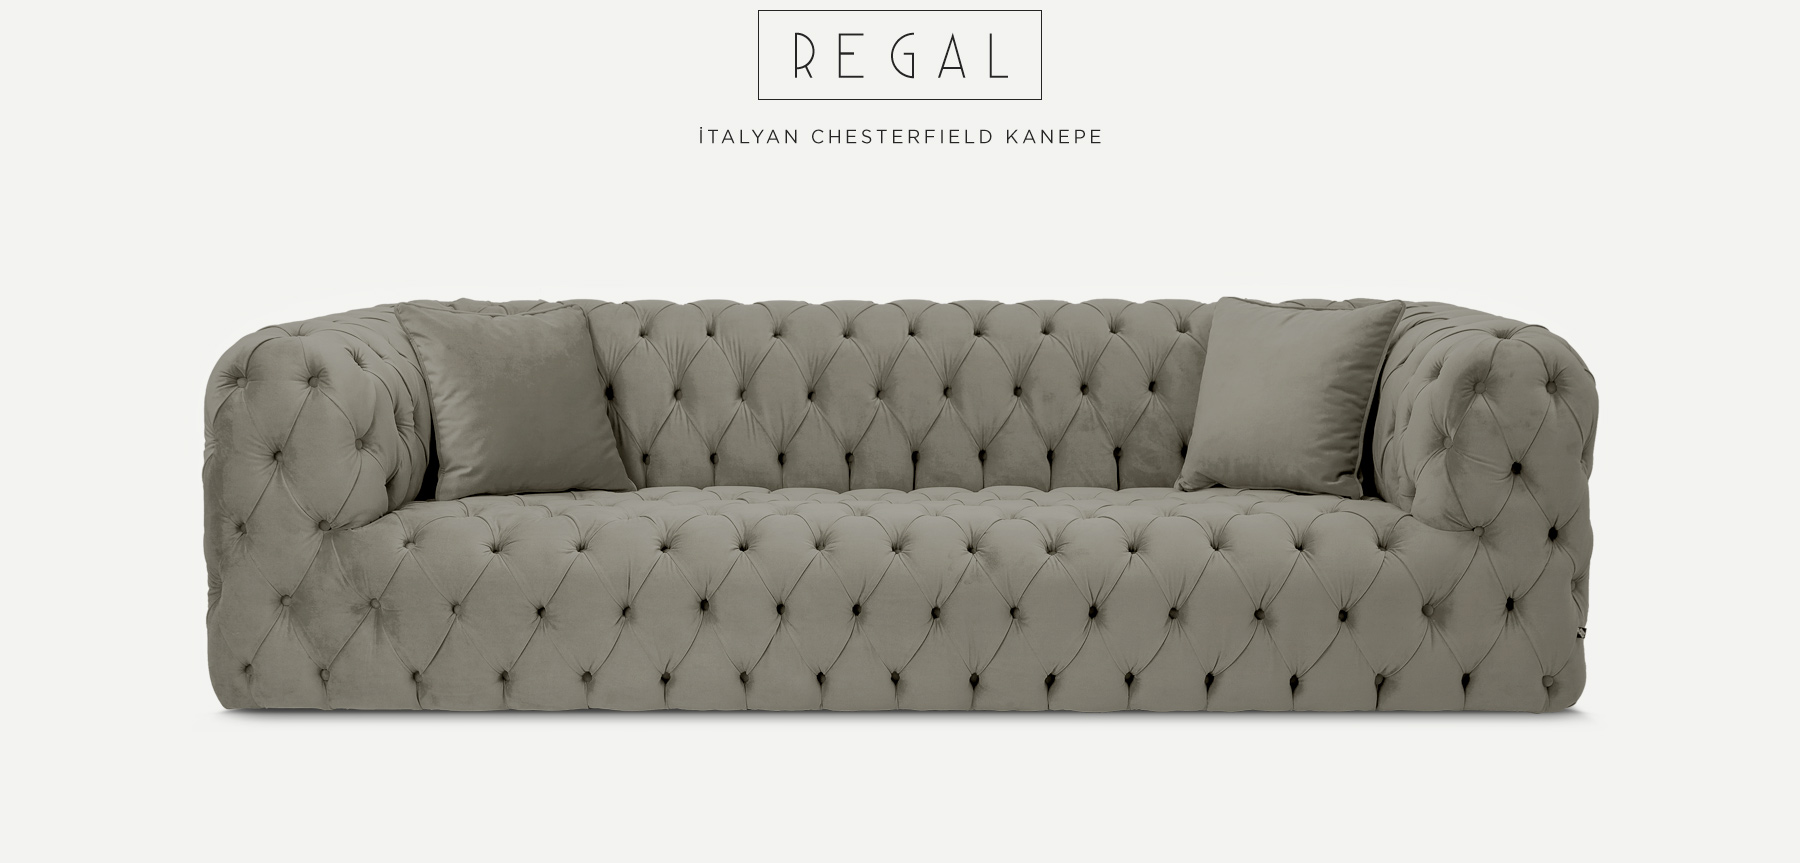 Regal Üçlü Gri İtalyan ChesterfIeld'in resmi